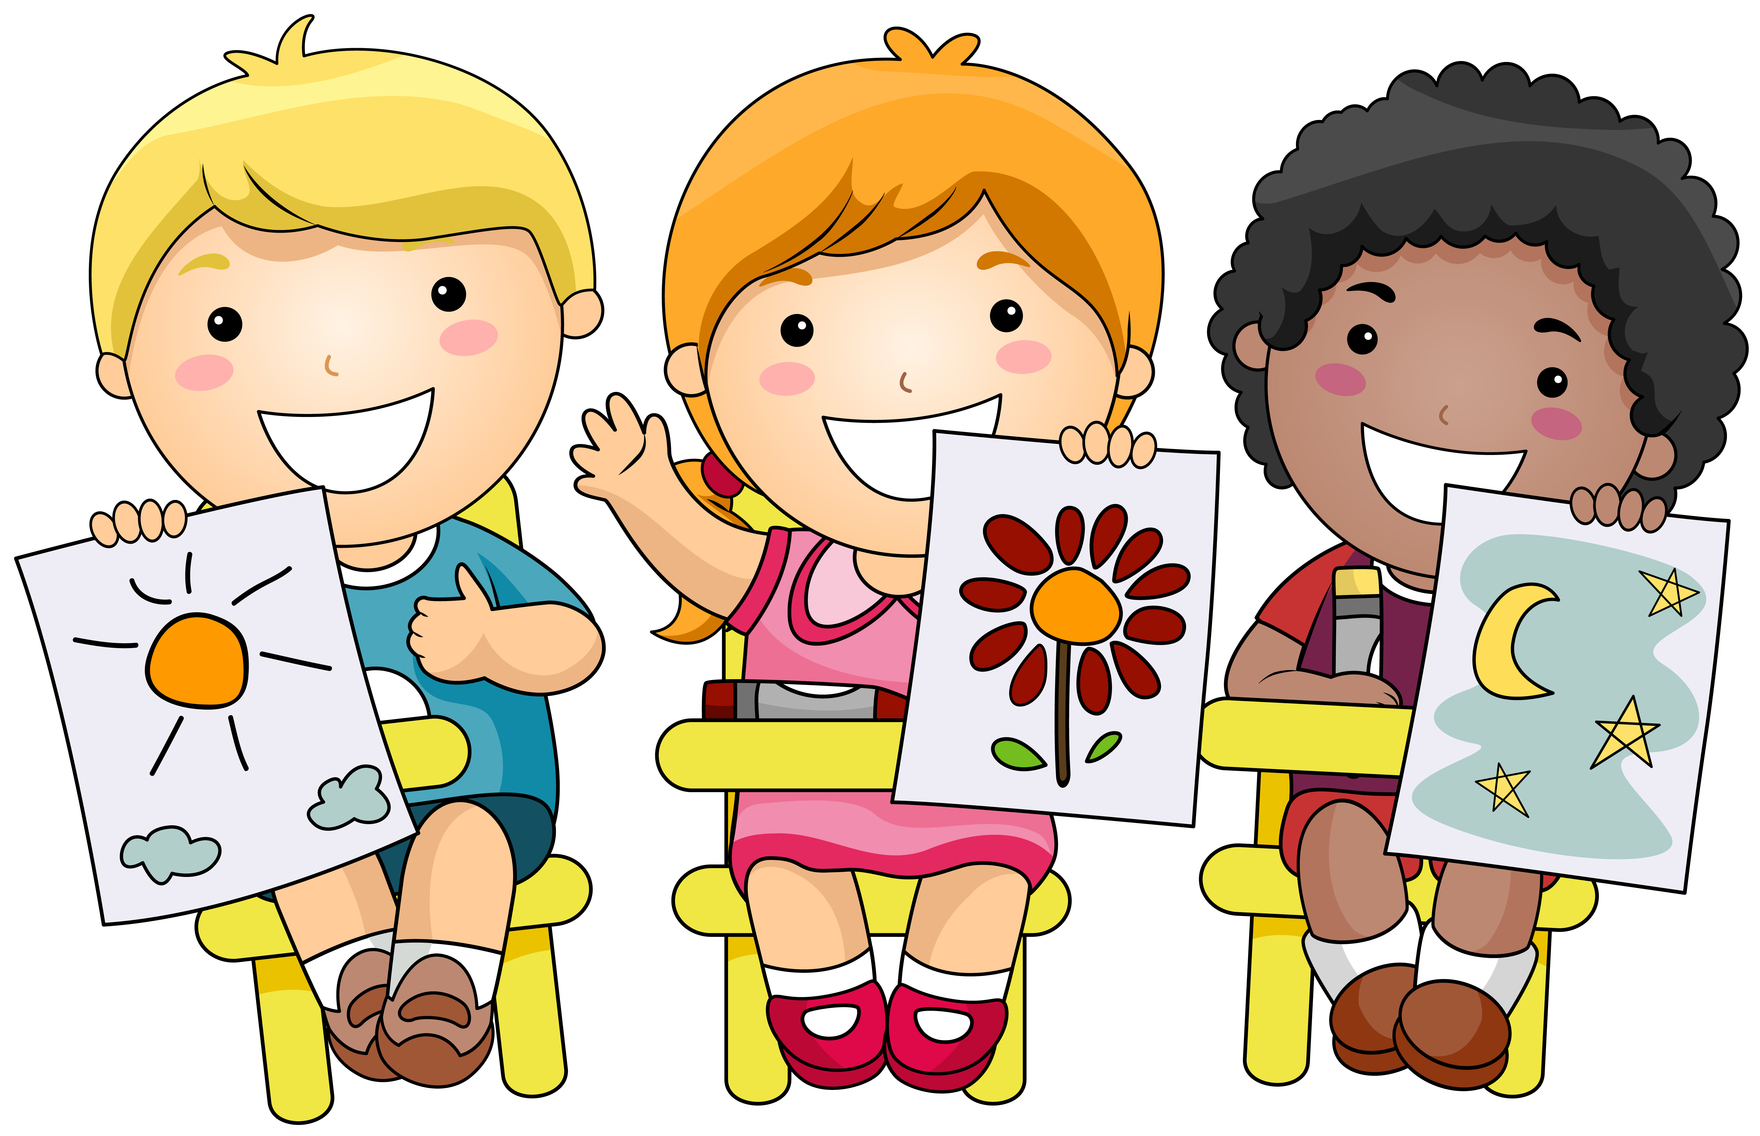 Cartoon images for children clipart